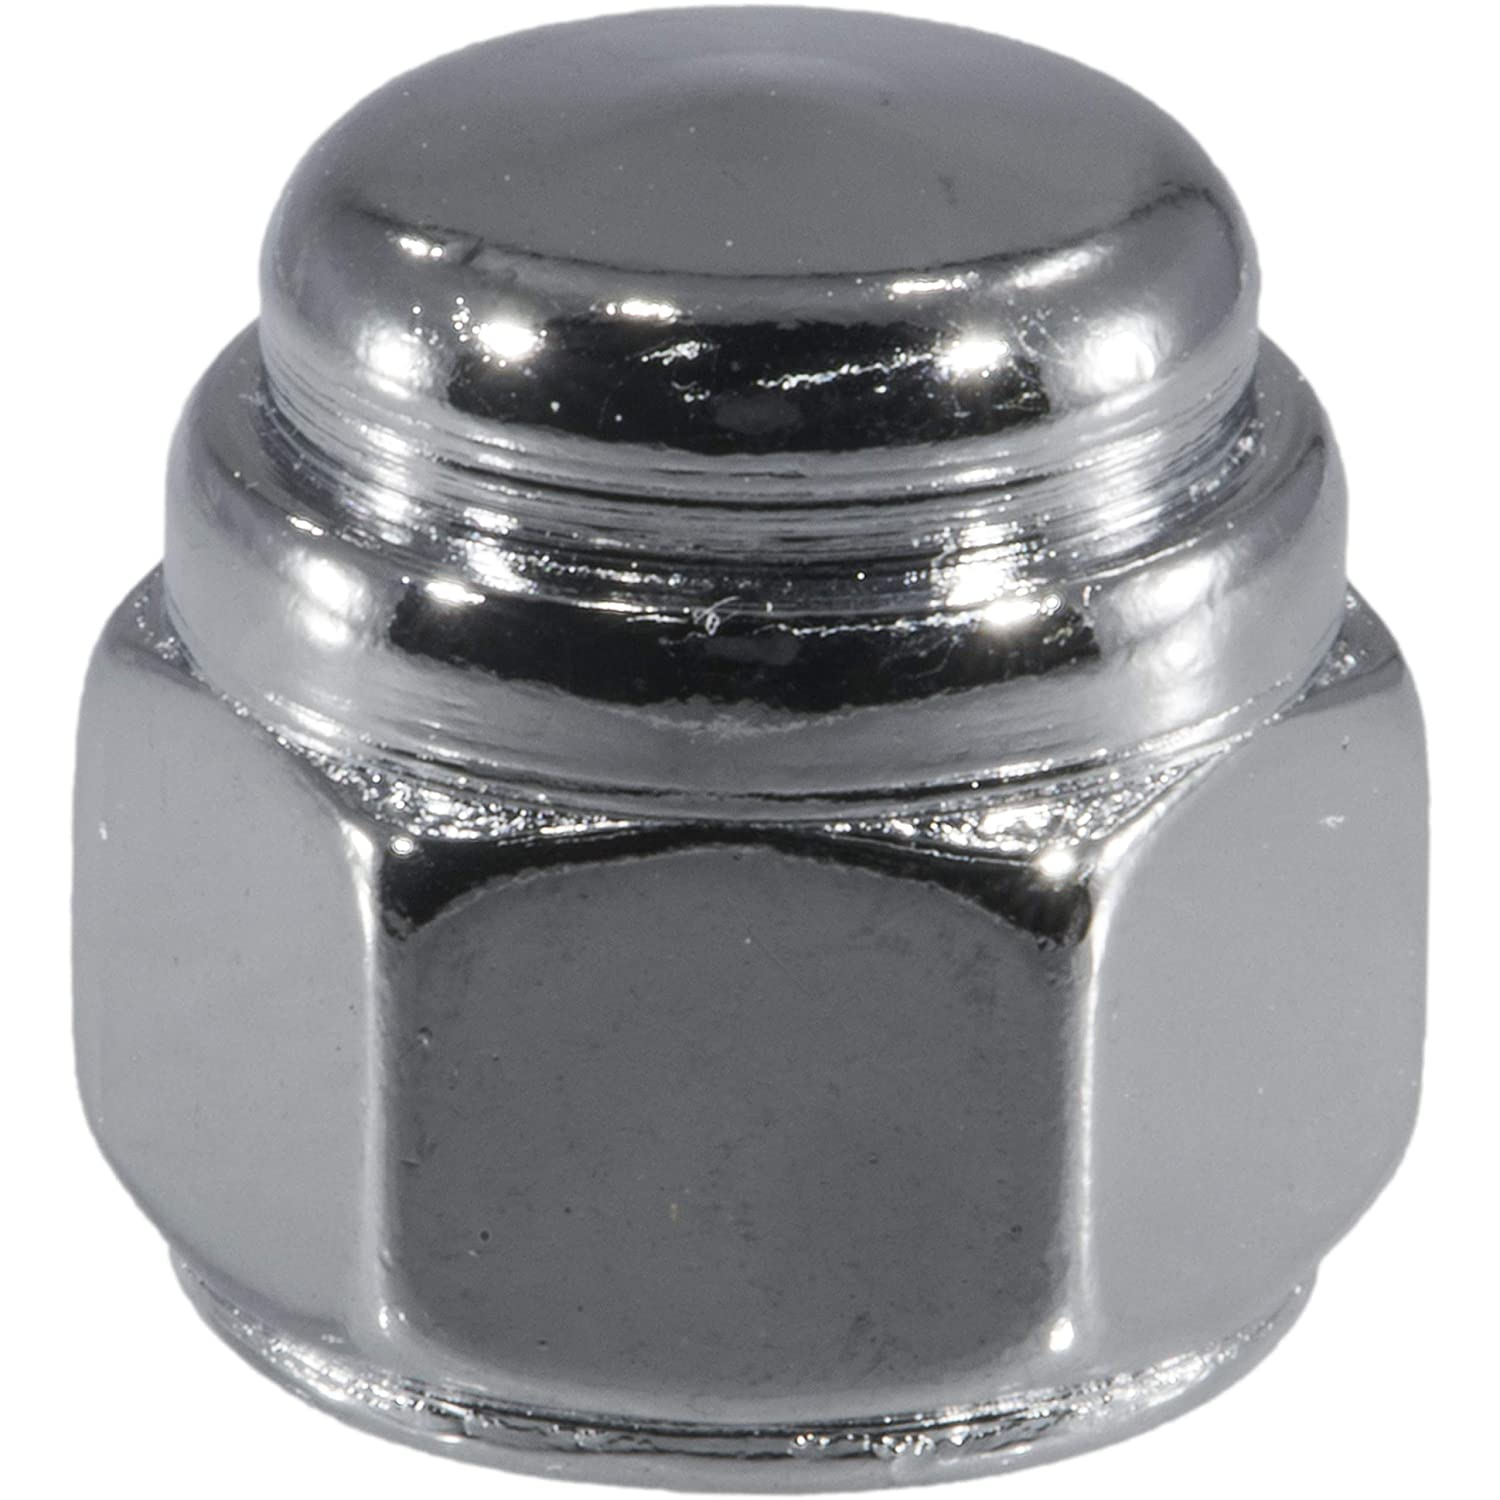 Piece-15 Midwest Fastener Corp 5//16-24 Hard-to-Find Fastener 014973478032 Flat Acorn Nut Chrome